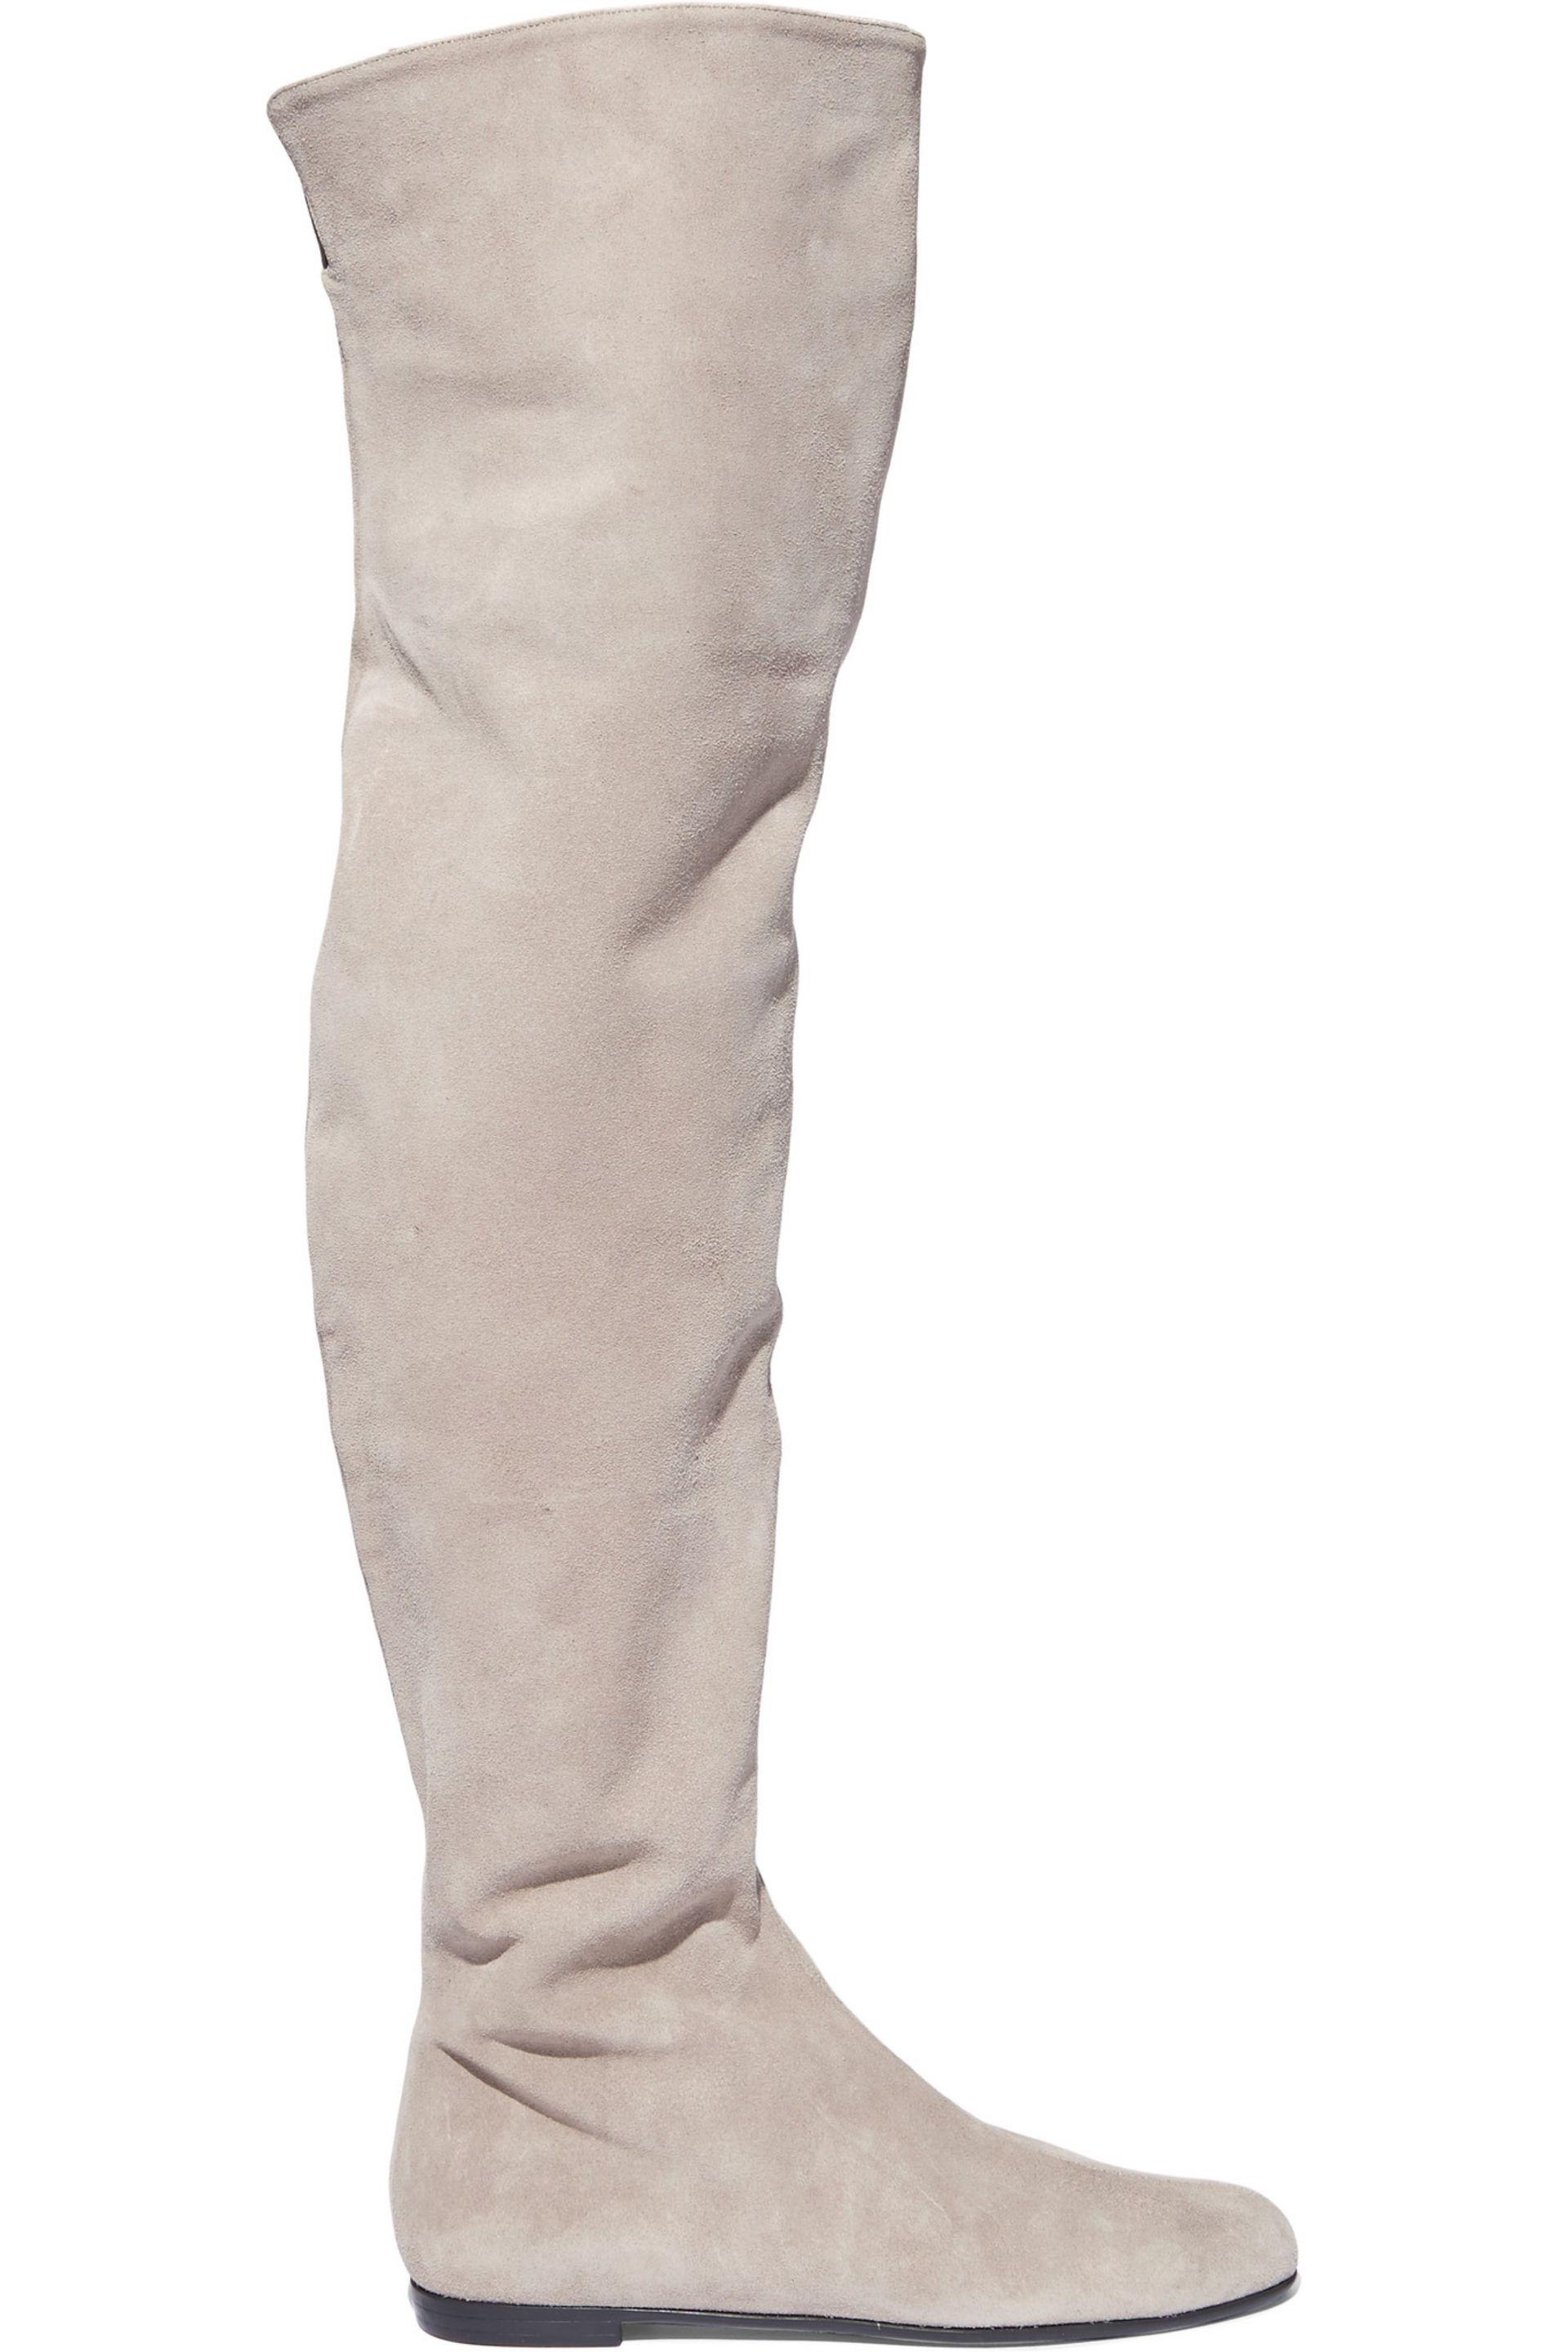 Giuseppe Zanotti. Women's Natural Suede Over-the-knee Boots